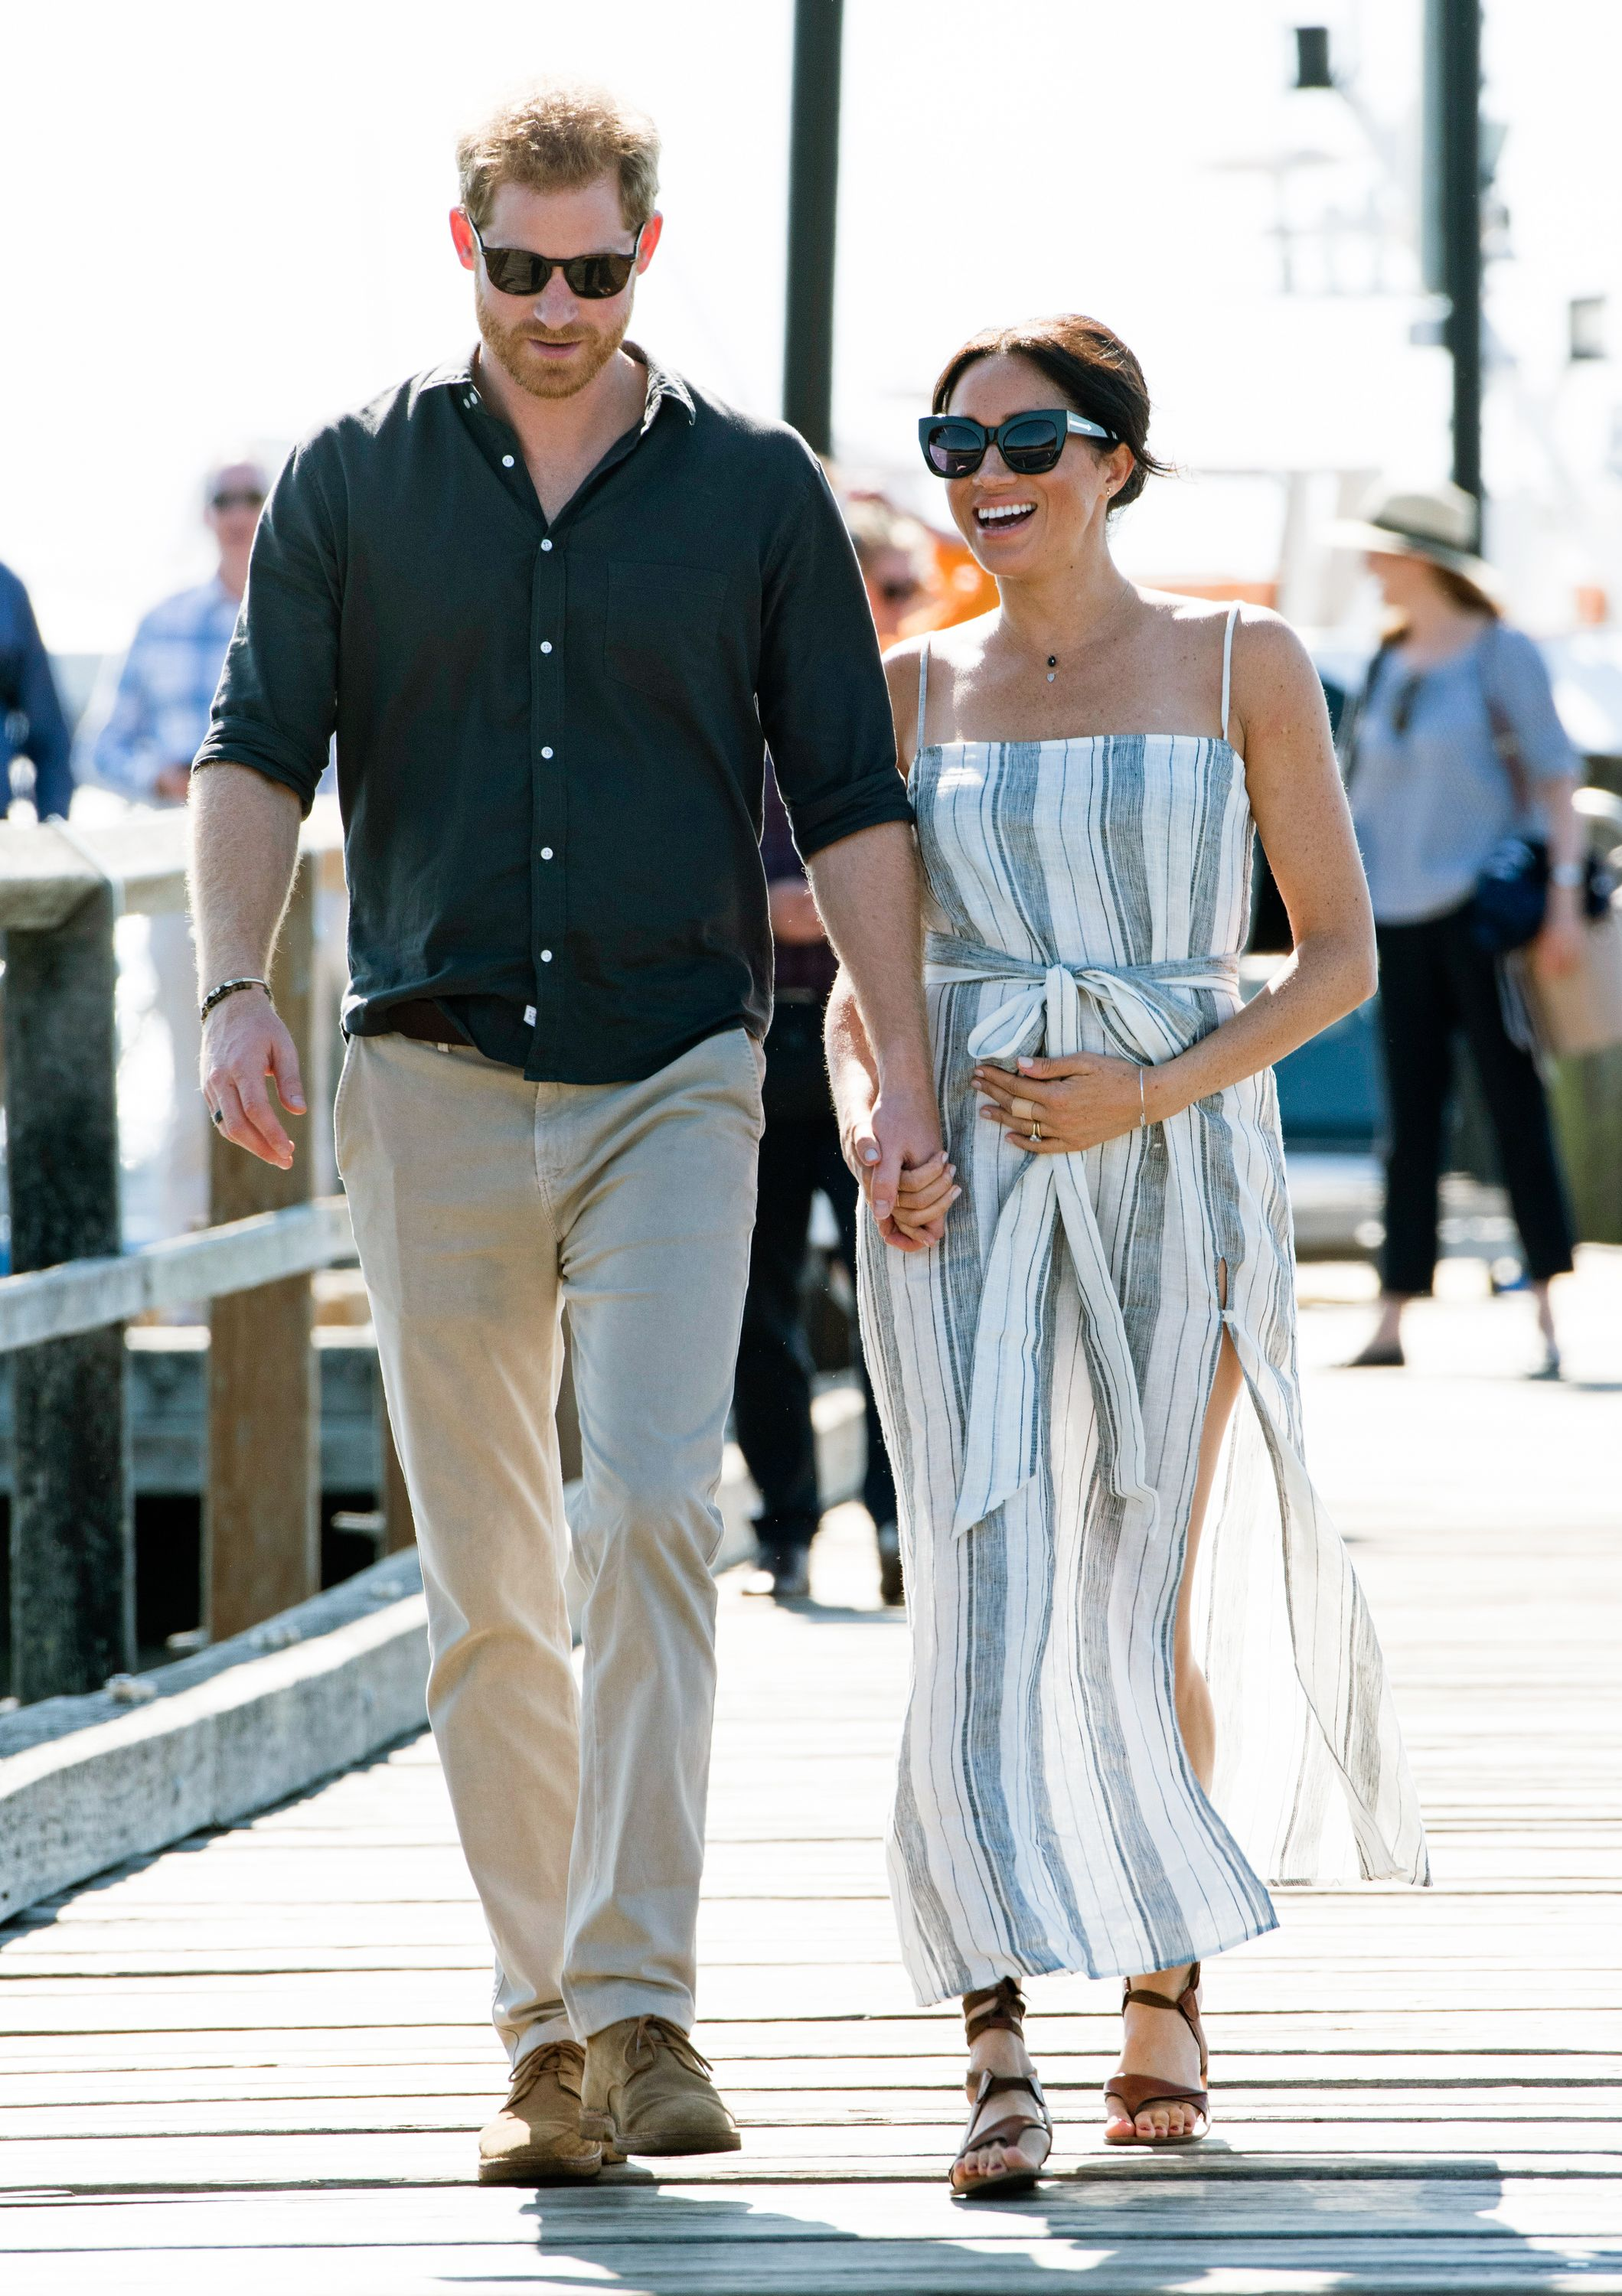 bb6460292 #MeghanMarkle broke royal protocol in favor of this affordable #reformation  dress. #royals #royalfamily #royalbaby #duchessofsussex #meghanmarklestyle